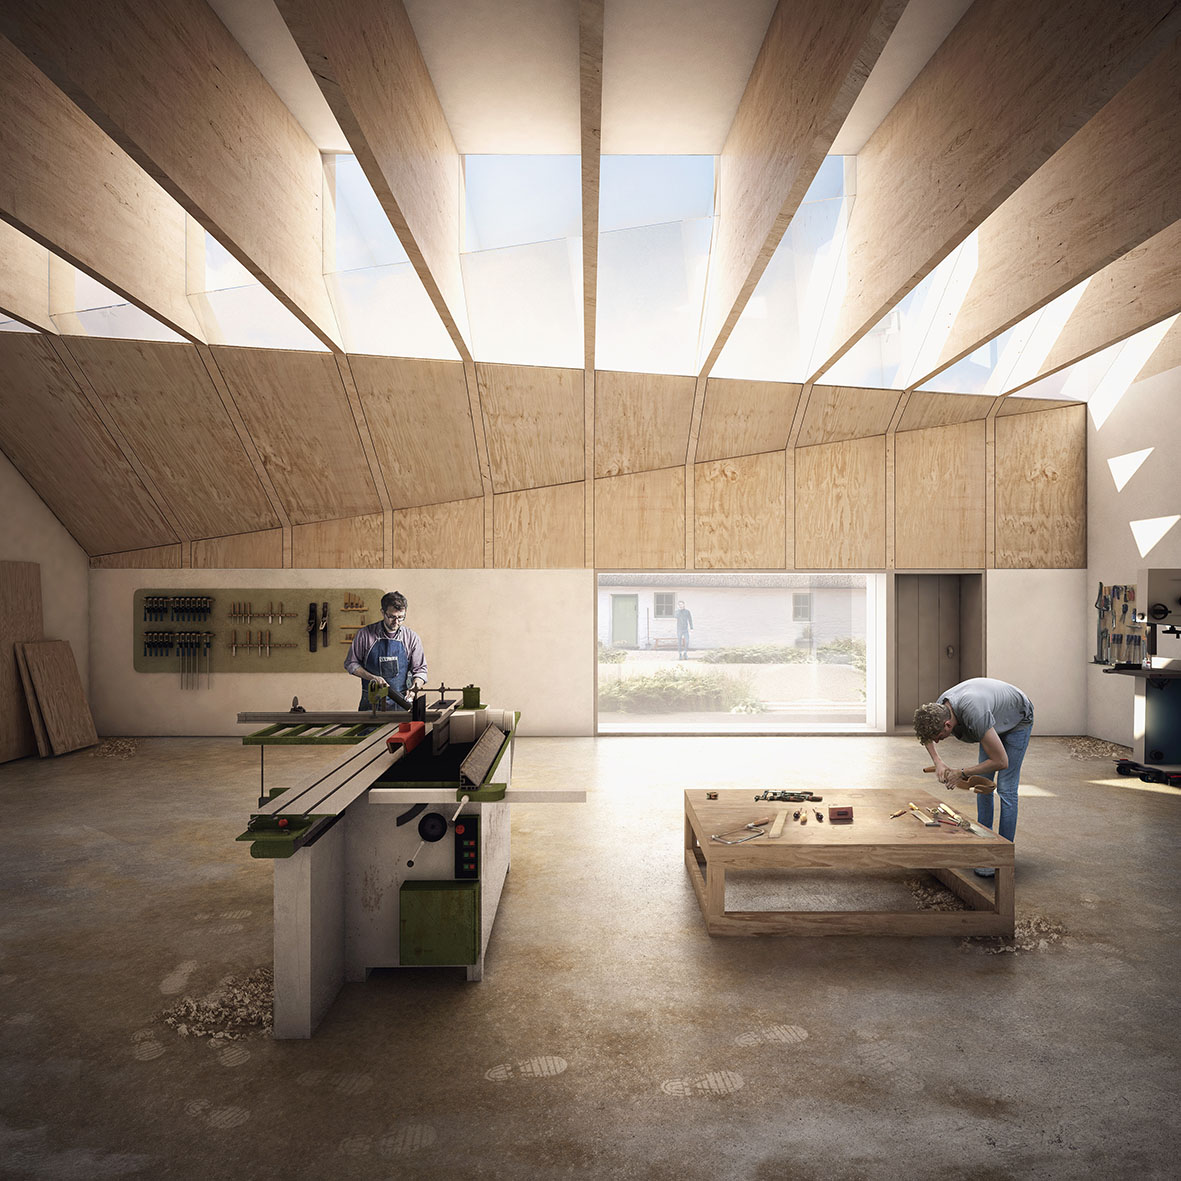 Joseph Walsh Studio by ID_DO, one of five innovators from the LSA Practice Network who will present at the event